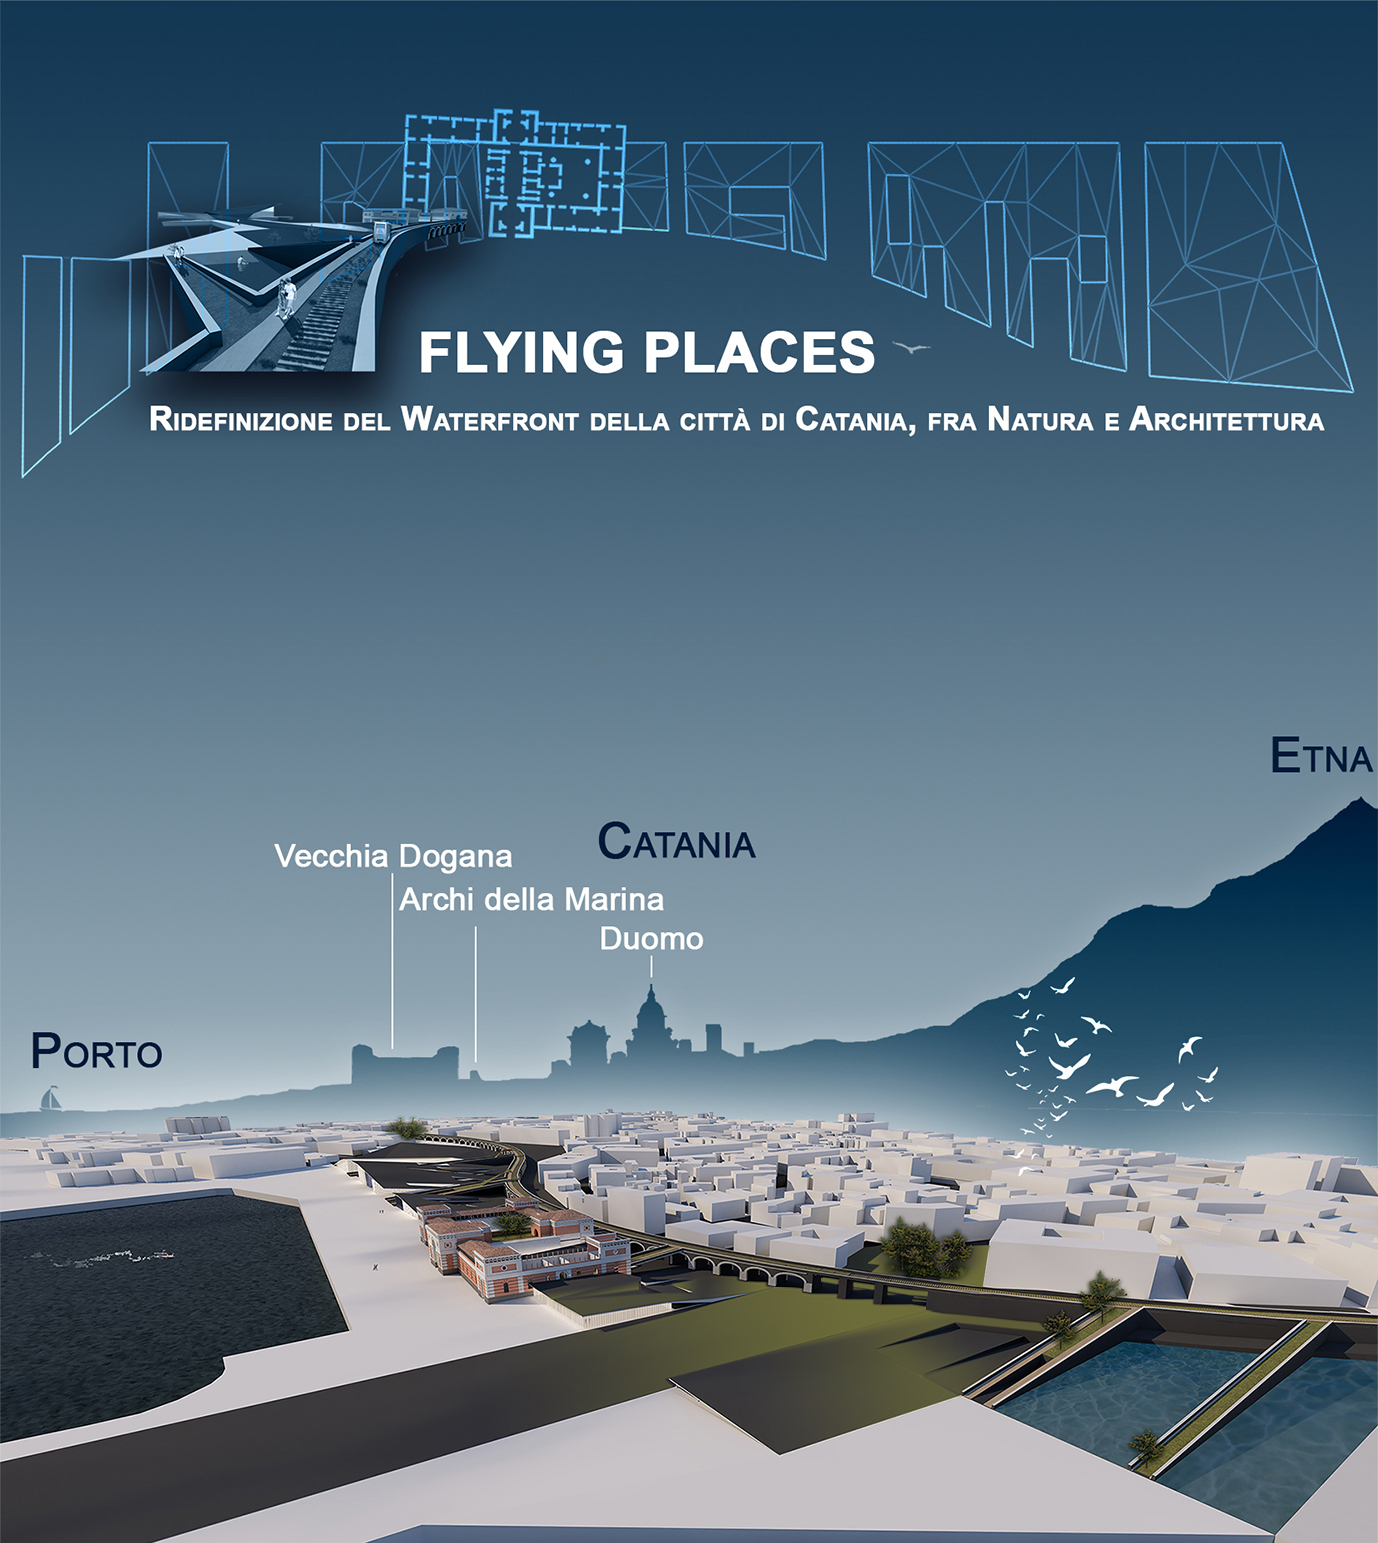 Flying Places